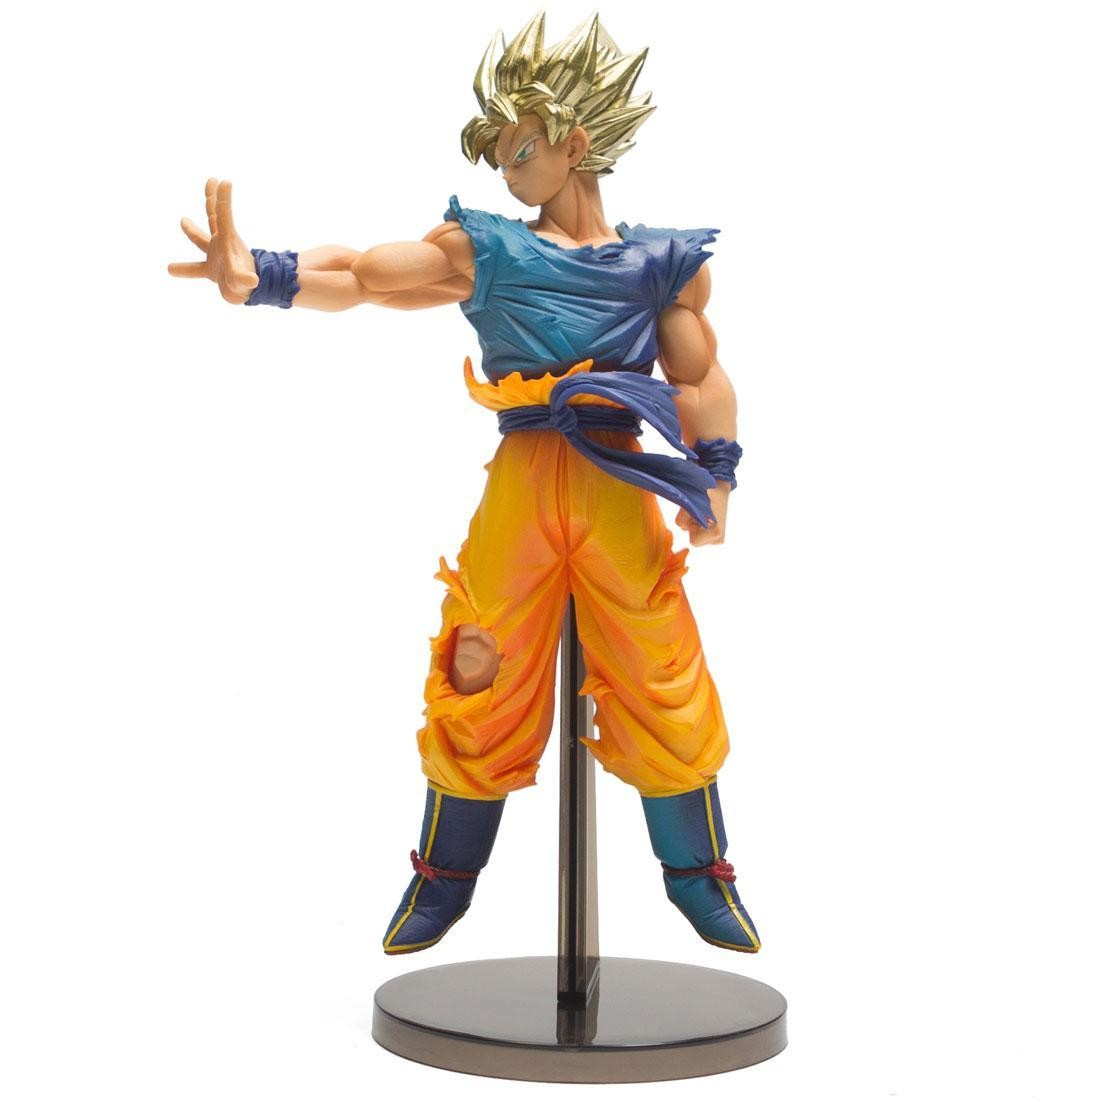 Banpresto Dragon Ball Z Blood Of Saiyans Super Saiyan Goku Special Ver Figure (blue)